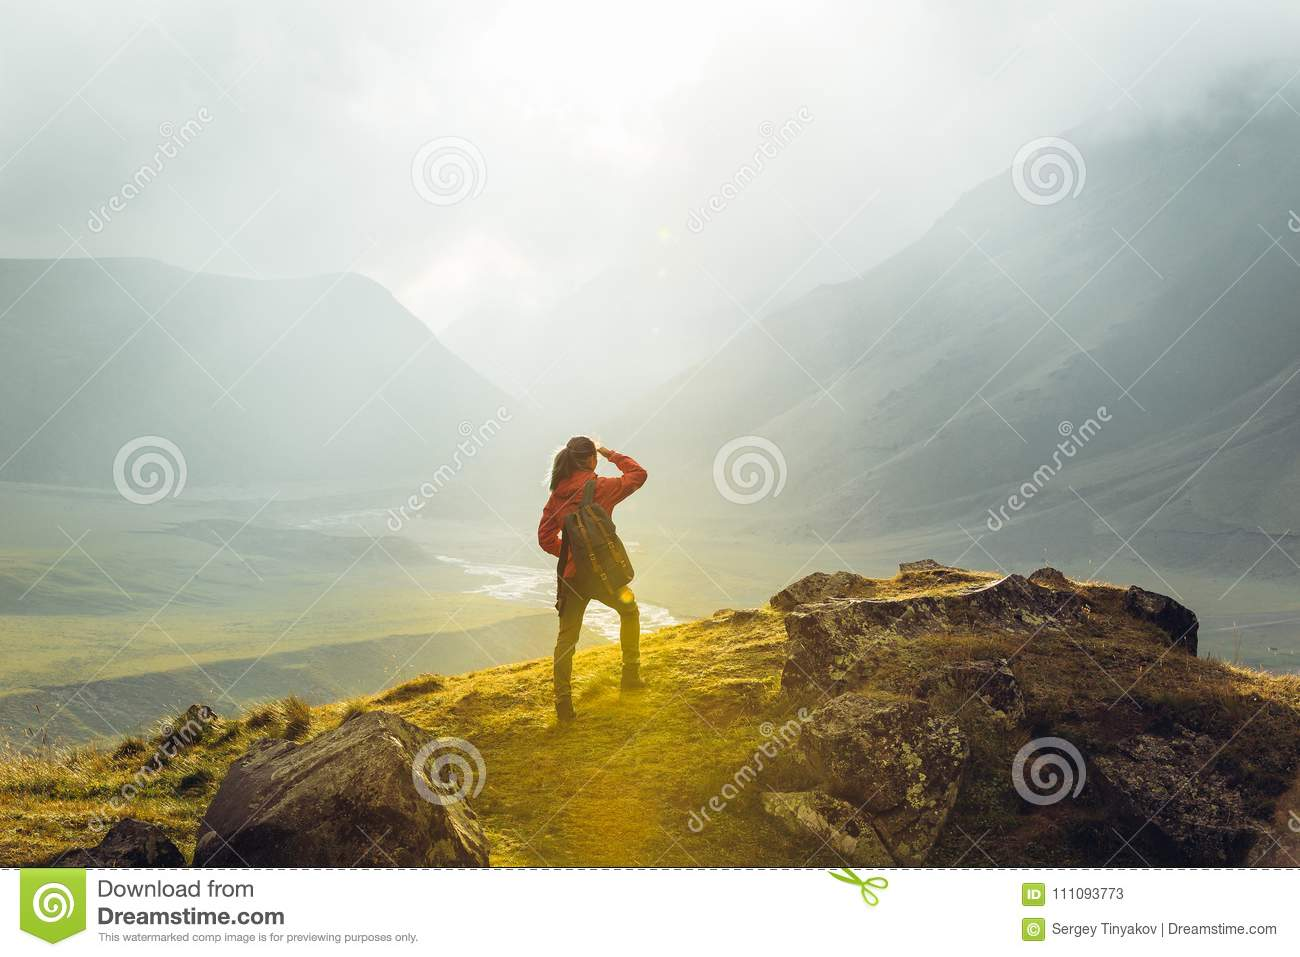 Discovery Travel Destination Concept. Hiker Young Woman With Backpack Rises To The Mountain Top Against Backdrop Of Sunset, Rear V